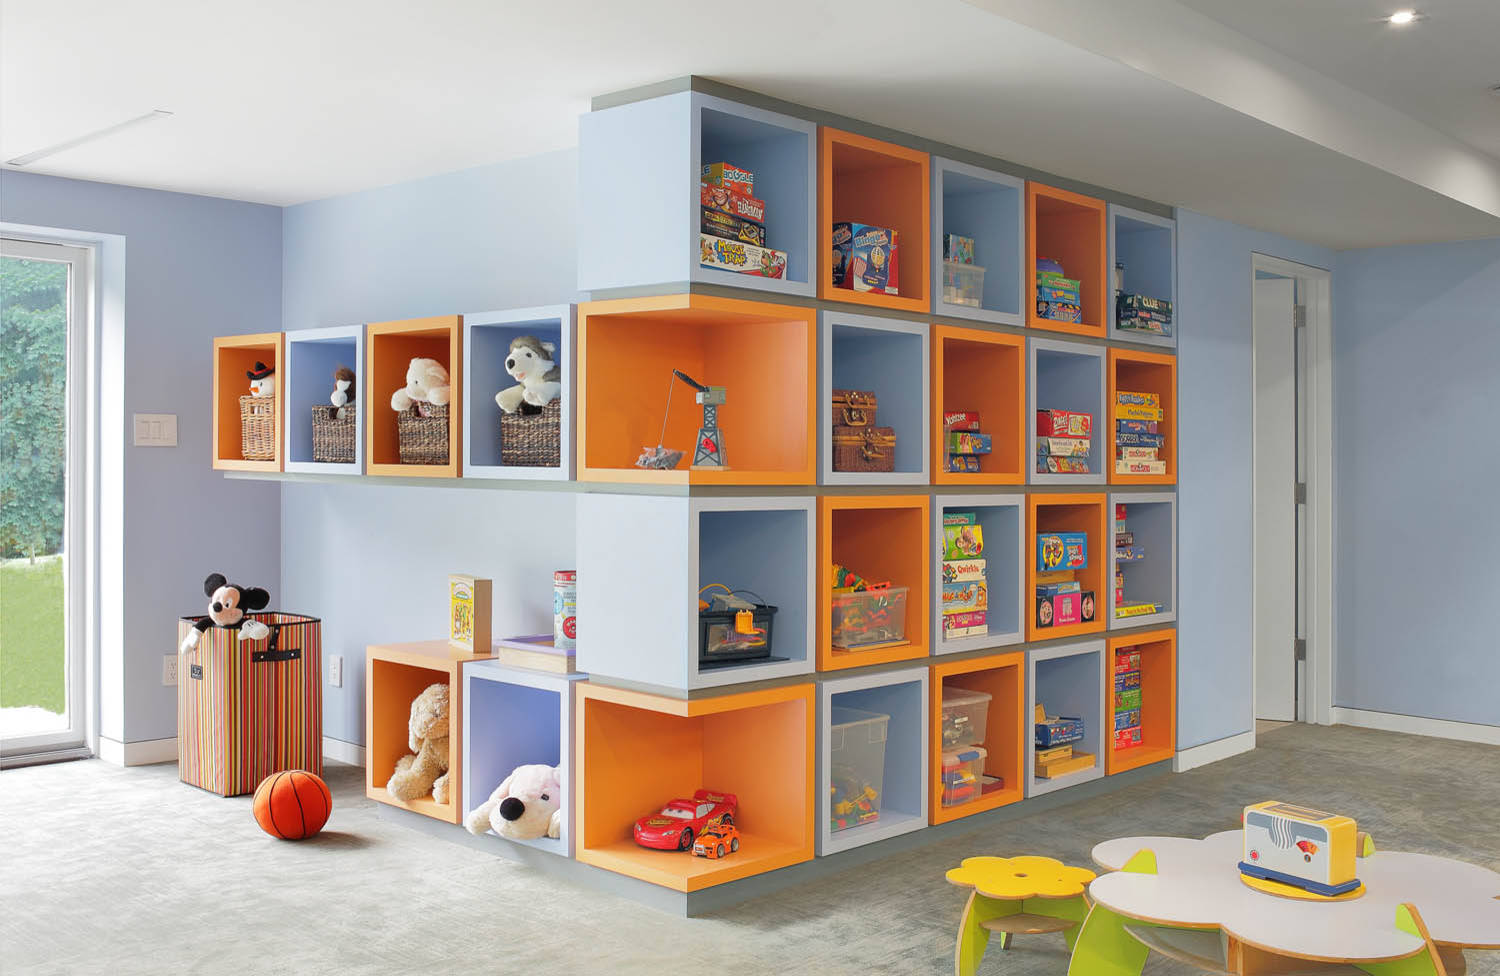 Ideas For A Kids Room With Storage Boxes For Toy Storage Shelf In Toy Room Storage With Nexus Storage Cube And Wall Cabinets Storage Plus Bright Colored And Recessed Lighting